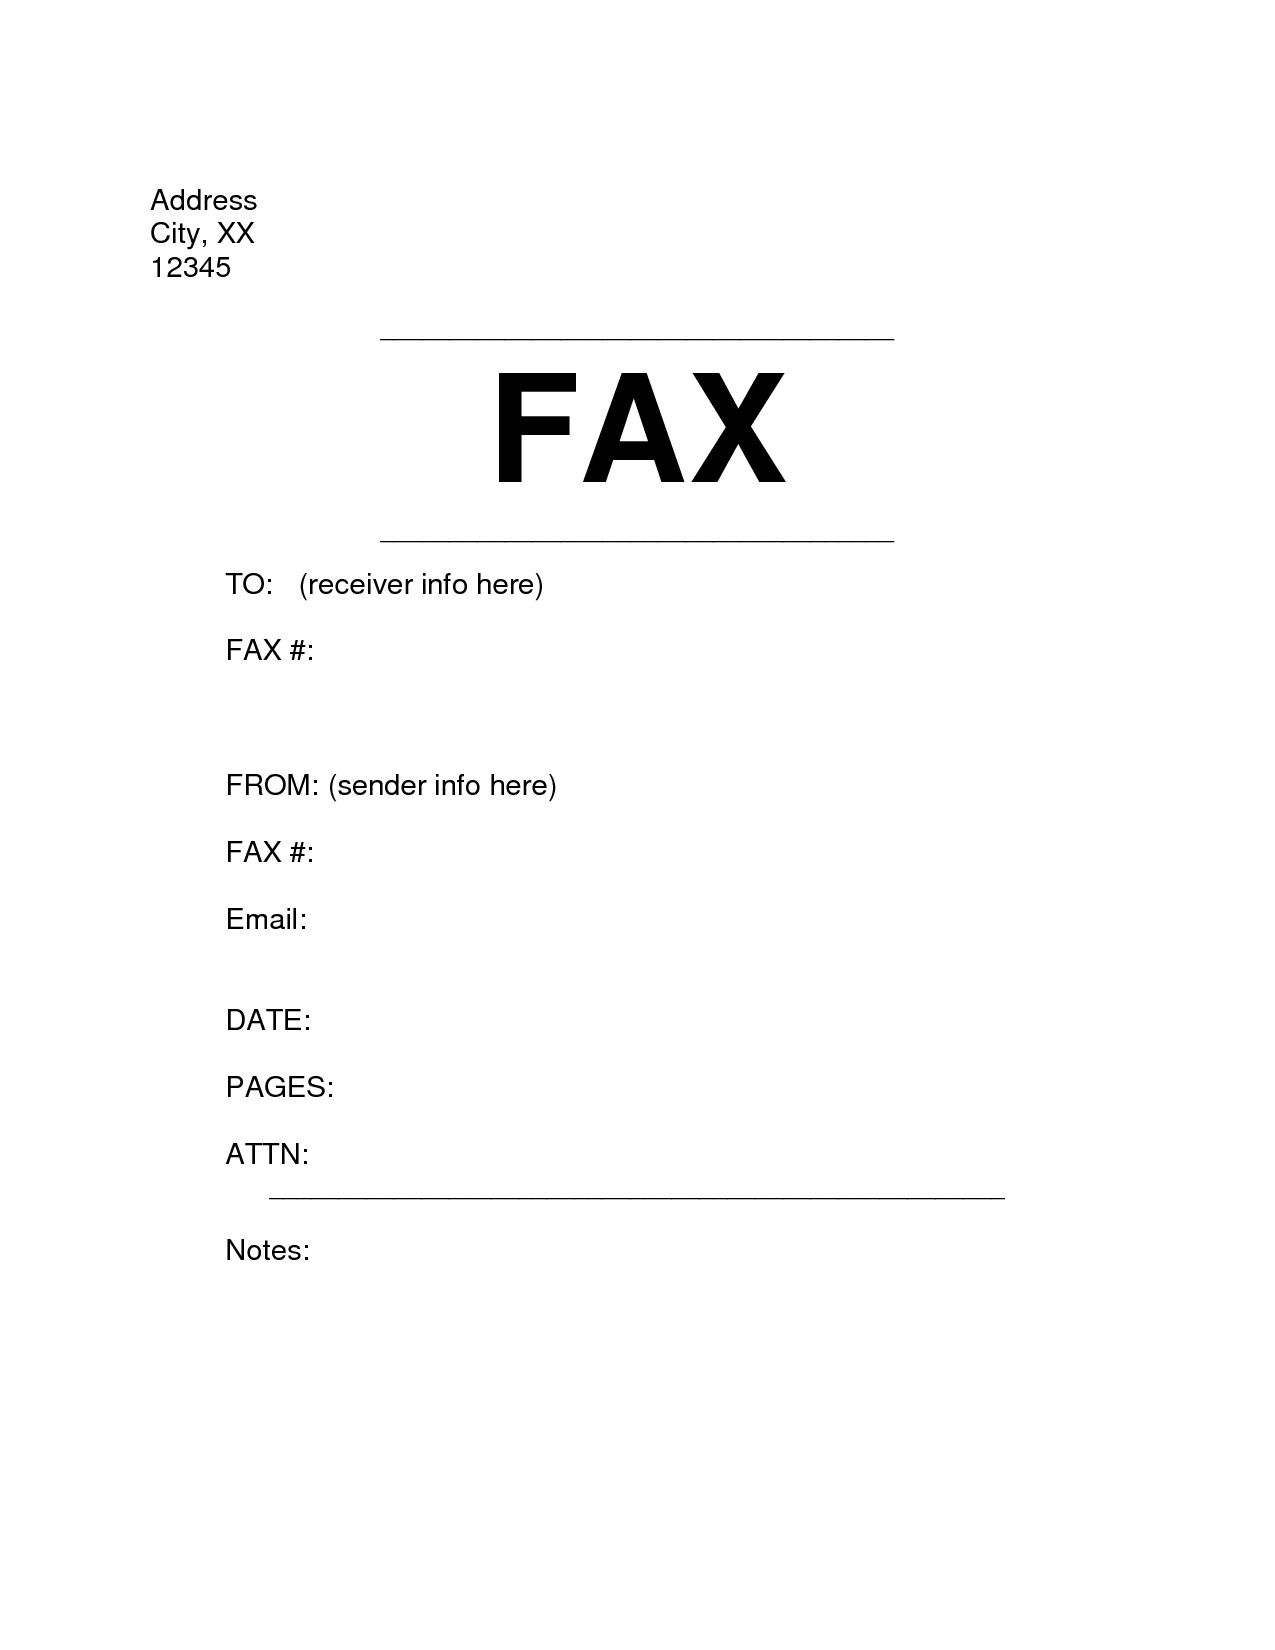 Fax Cover Letter Example Resume  Fax Cover Letter Example Resume